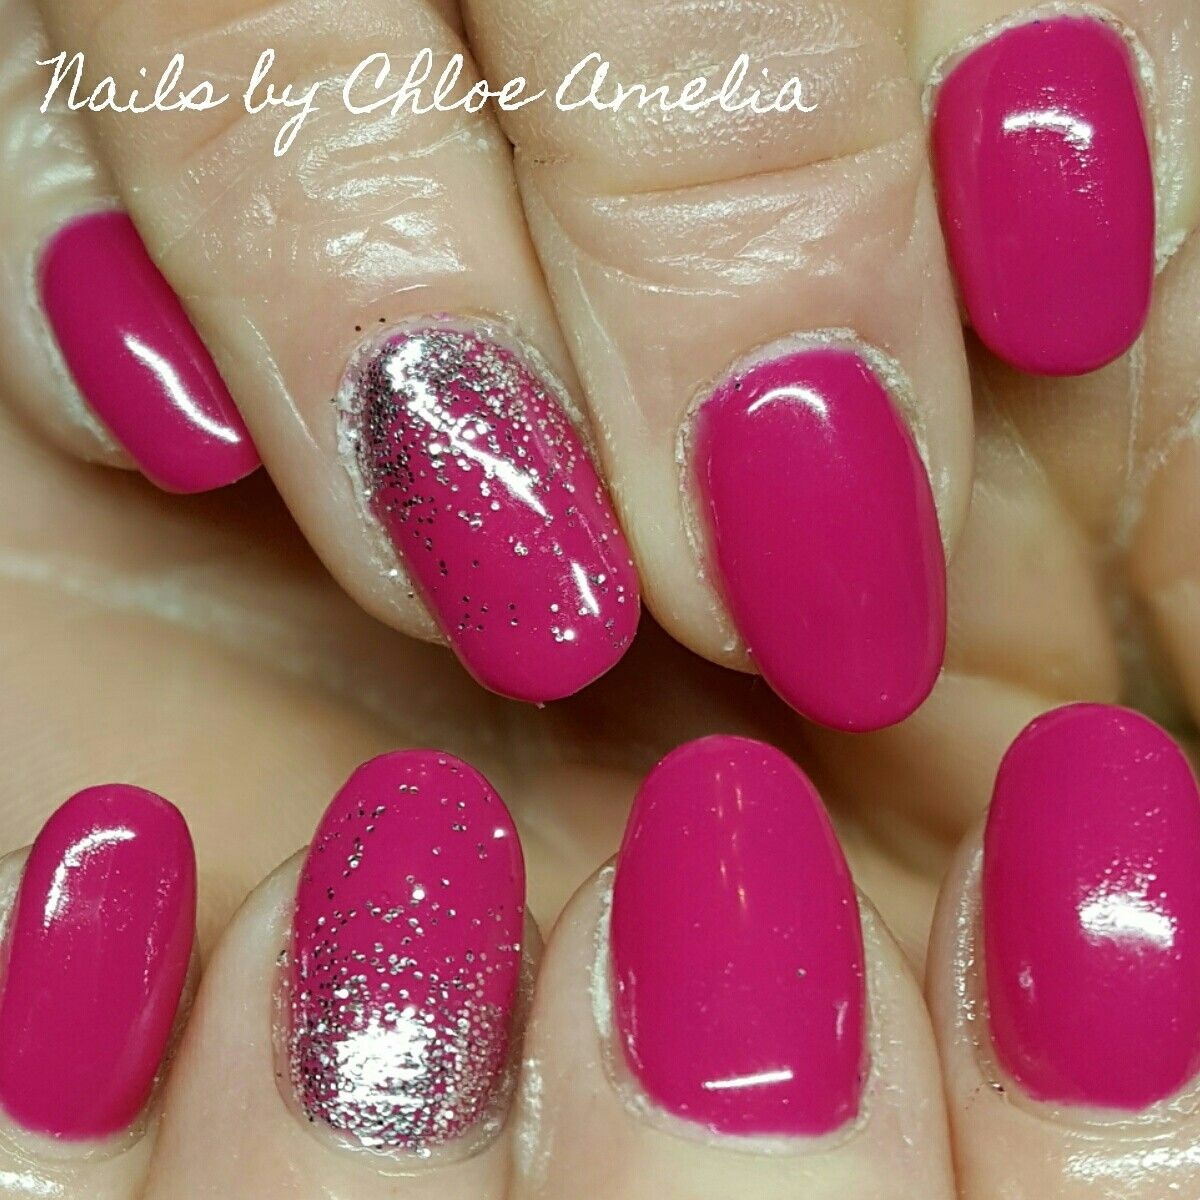 Fuschia nails- Pink nails- Calgel Manicure | Nail Designs ...